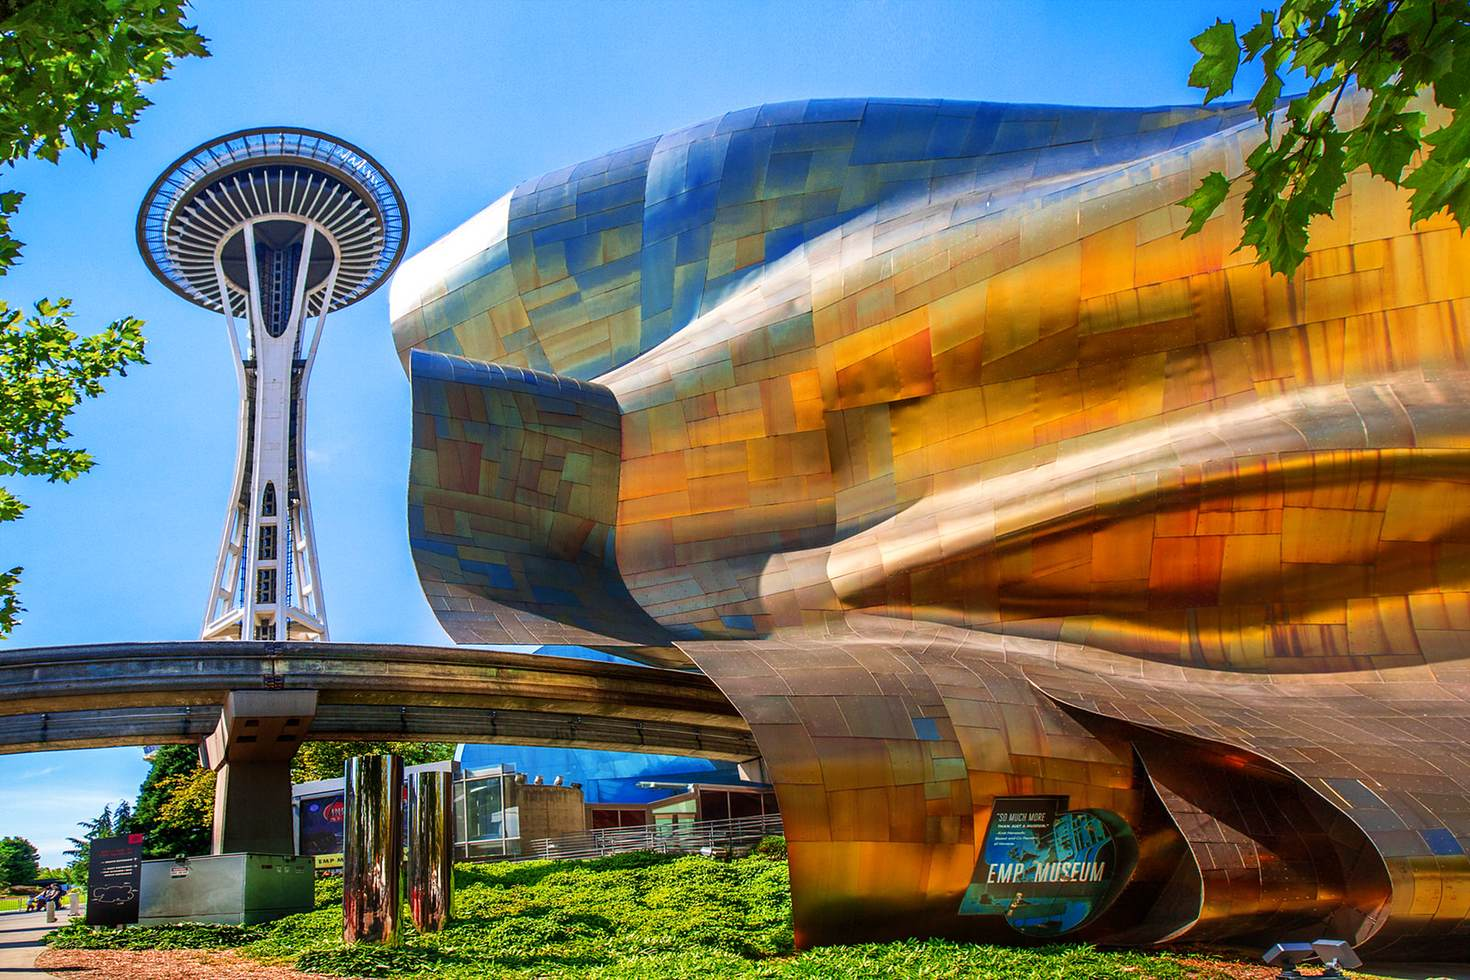 EMP Museum Building, Seattle © Artie Photography (Artie Ng) / Getty Images